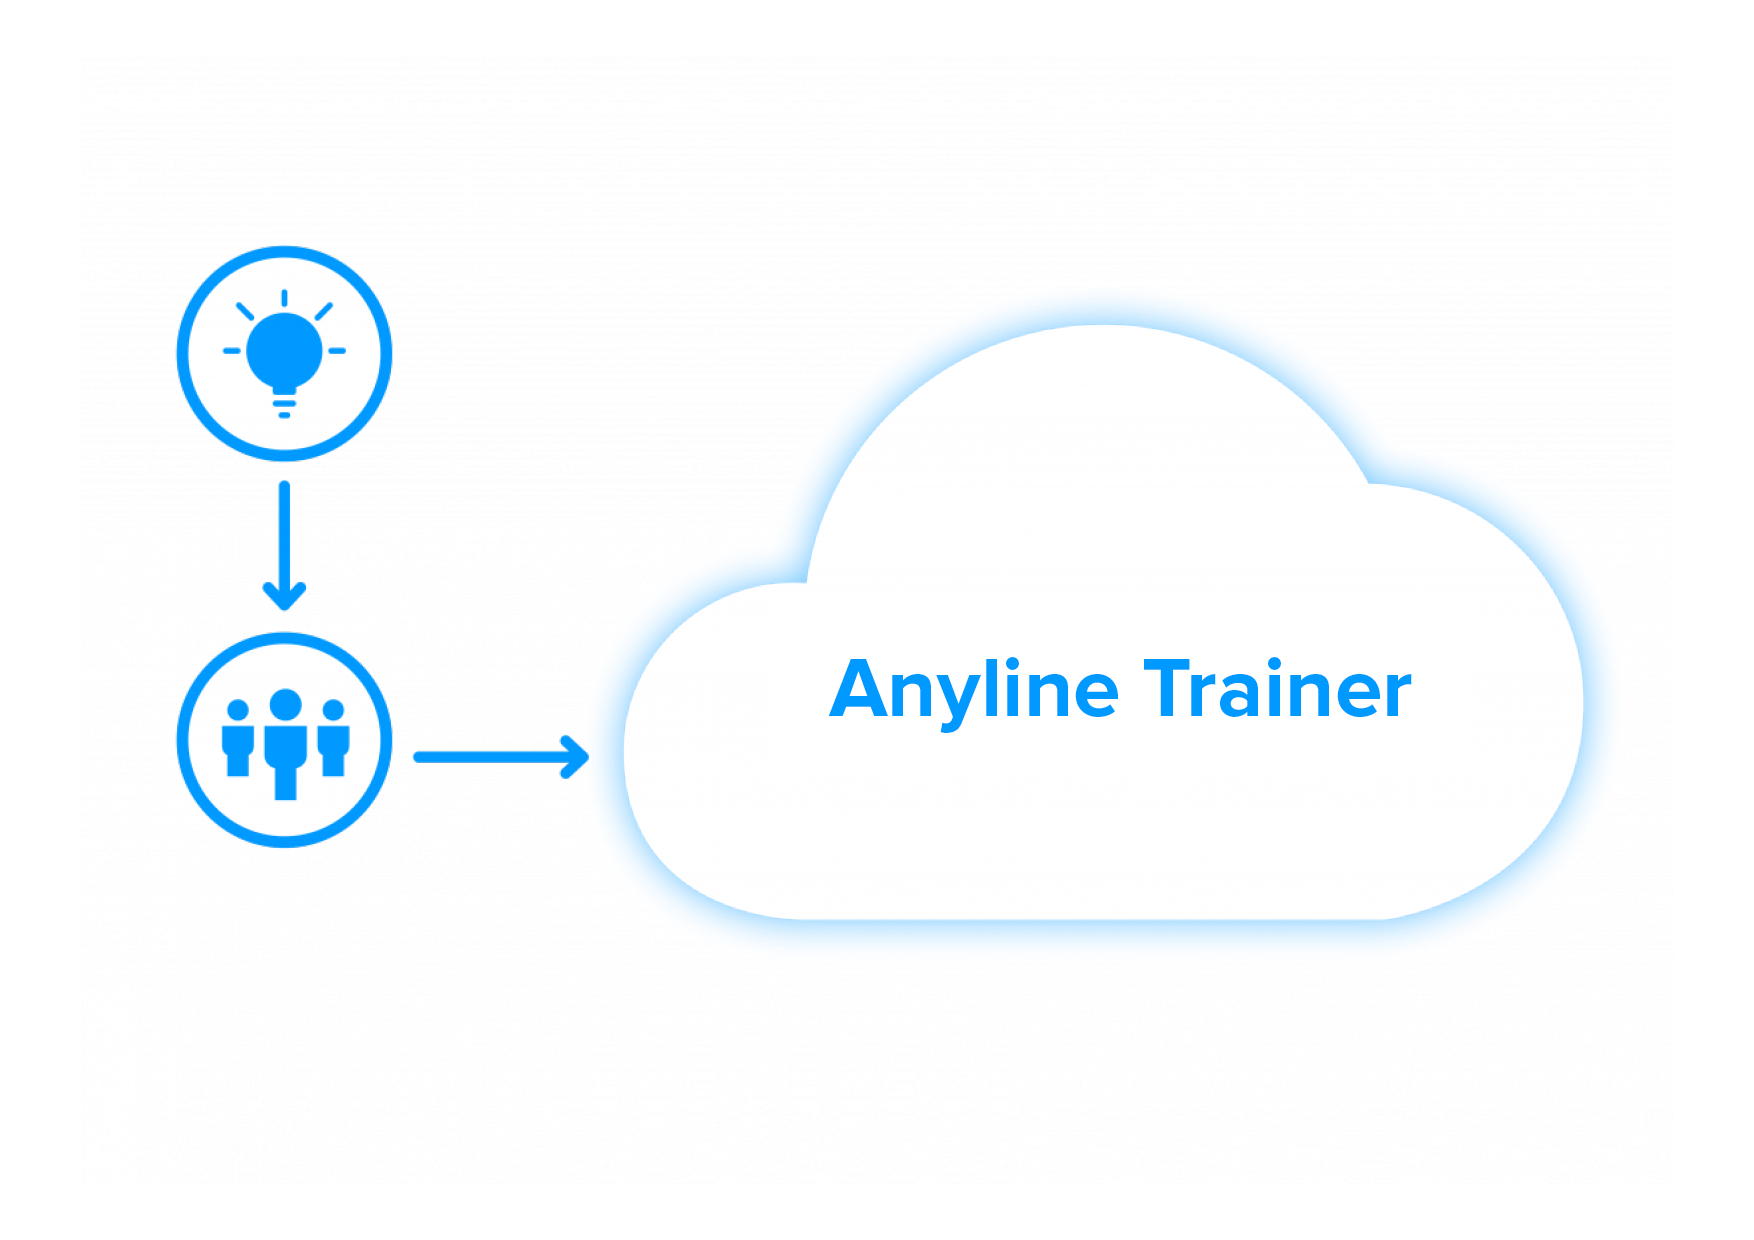 Anyline Trainer Graphic 1 - Custom Mobile Scanning Solutions